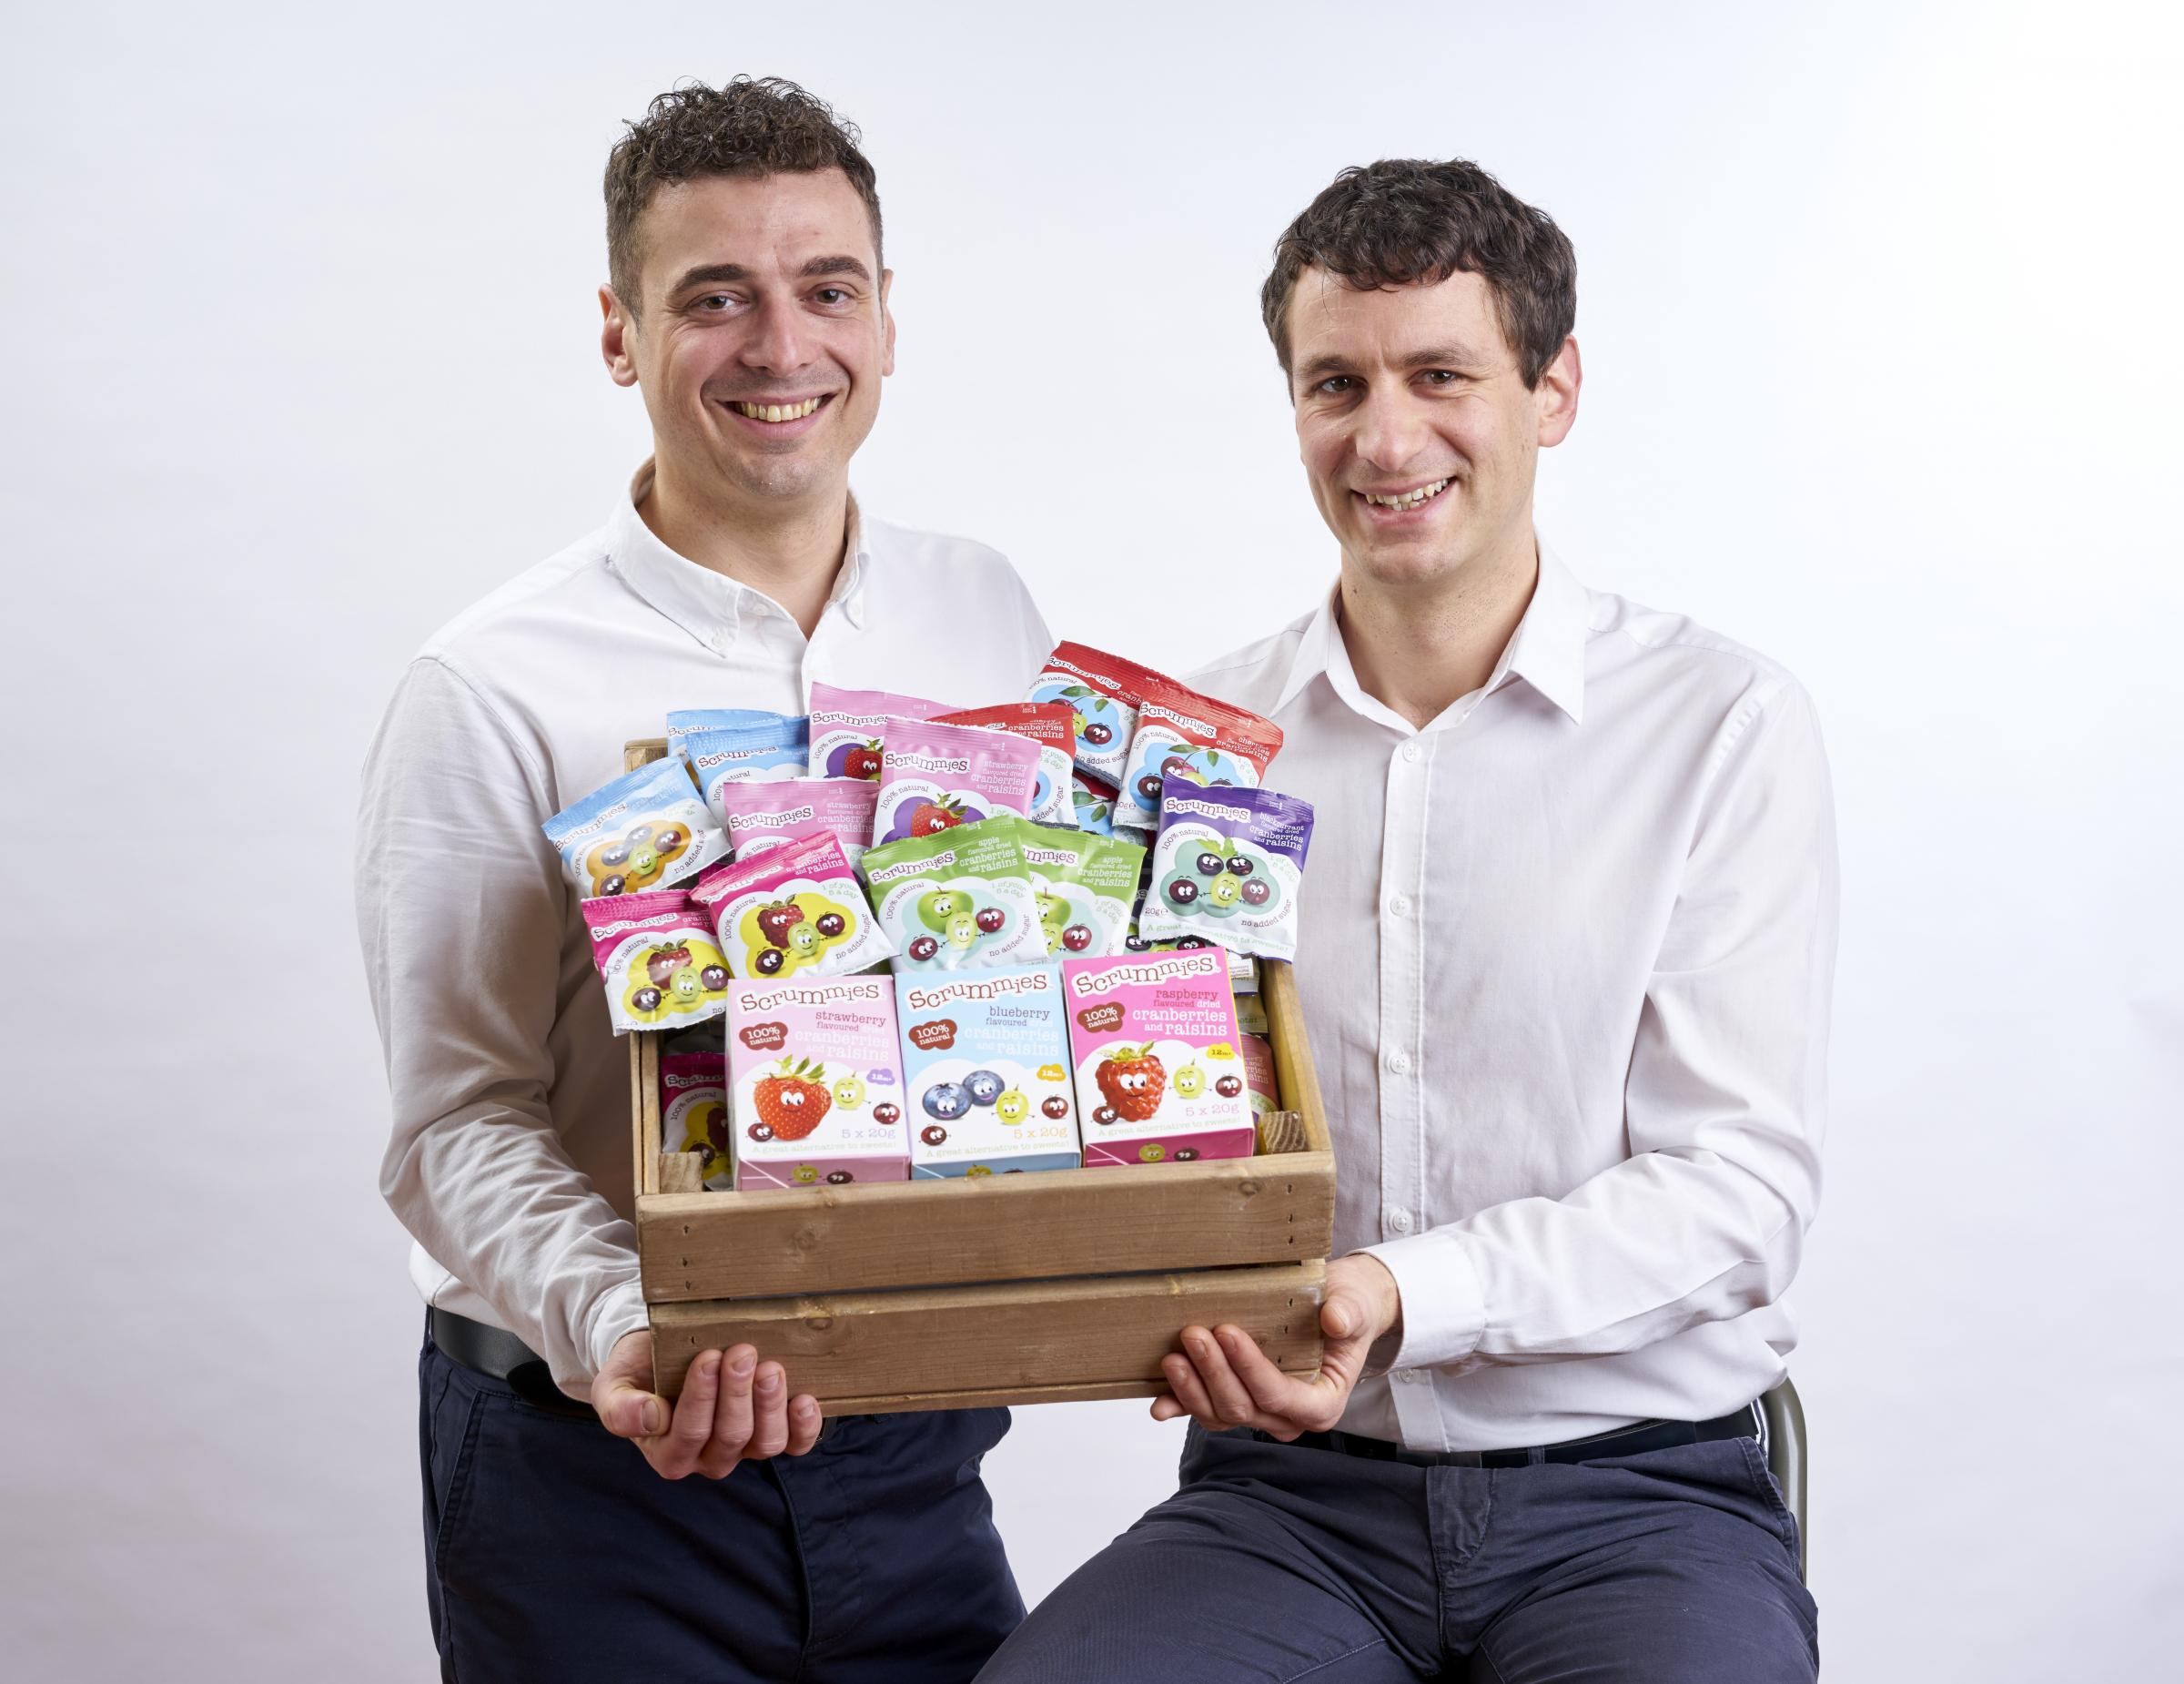 Rick Wadsworth and James Feddo with some of the Scrummies made by their company Clearly Scrumptious